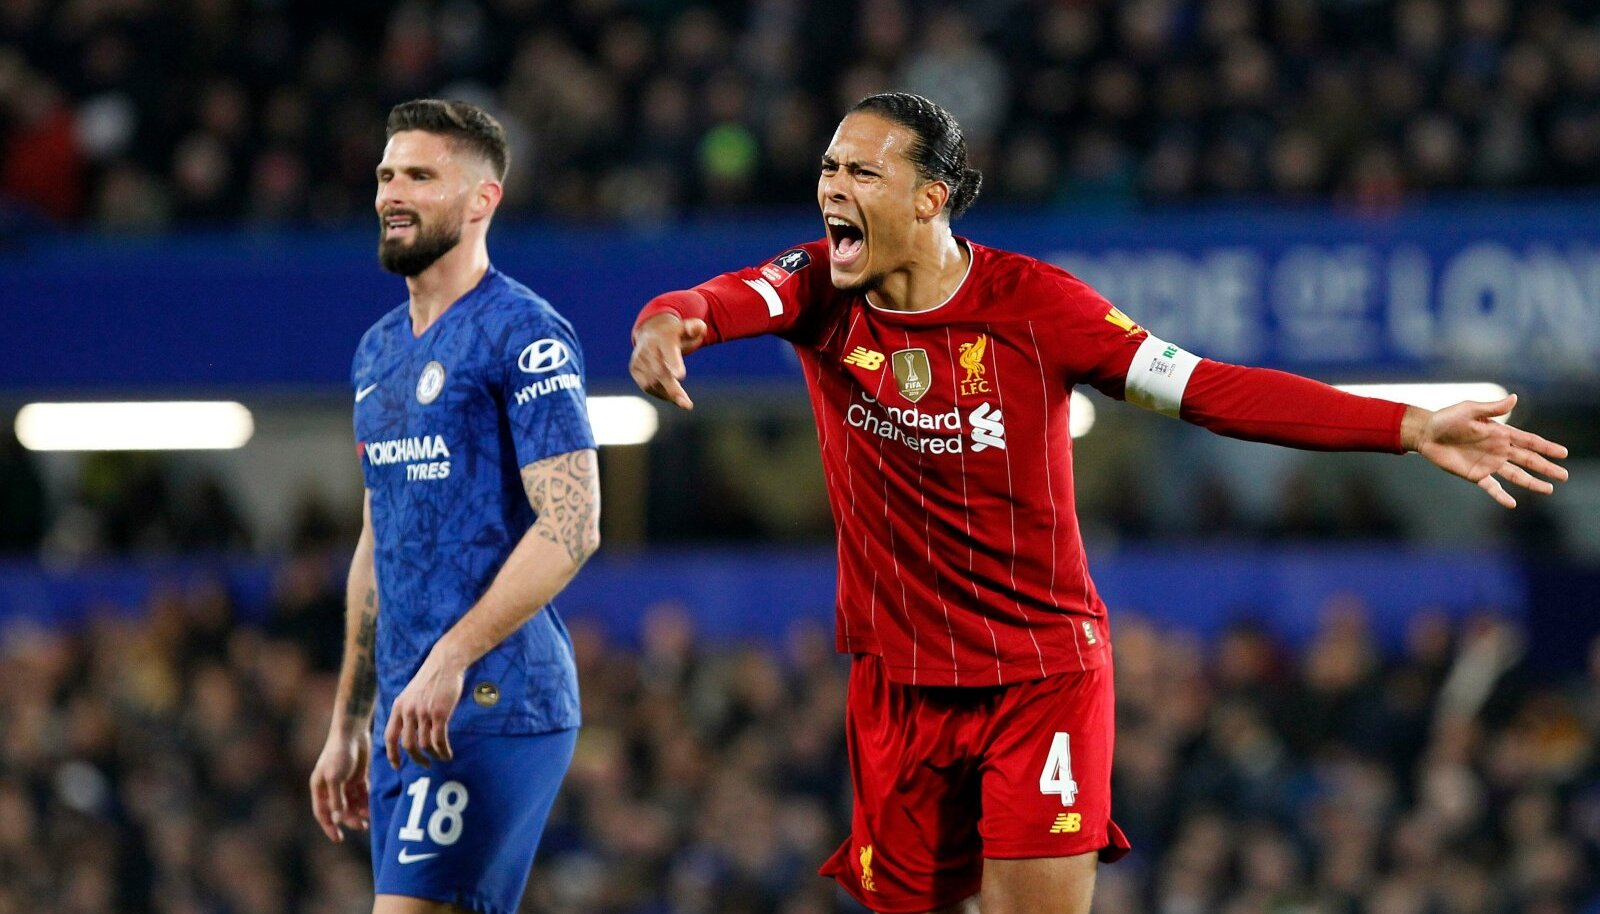 Virgil van Dijk of Liverpool barks orders during the The FA Cup round of 16 match between Chelsea and Liverpool at Stamf